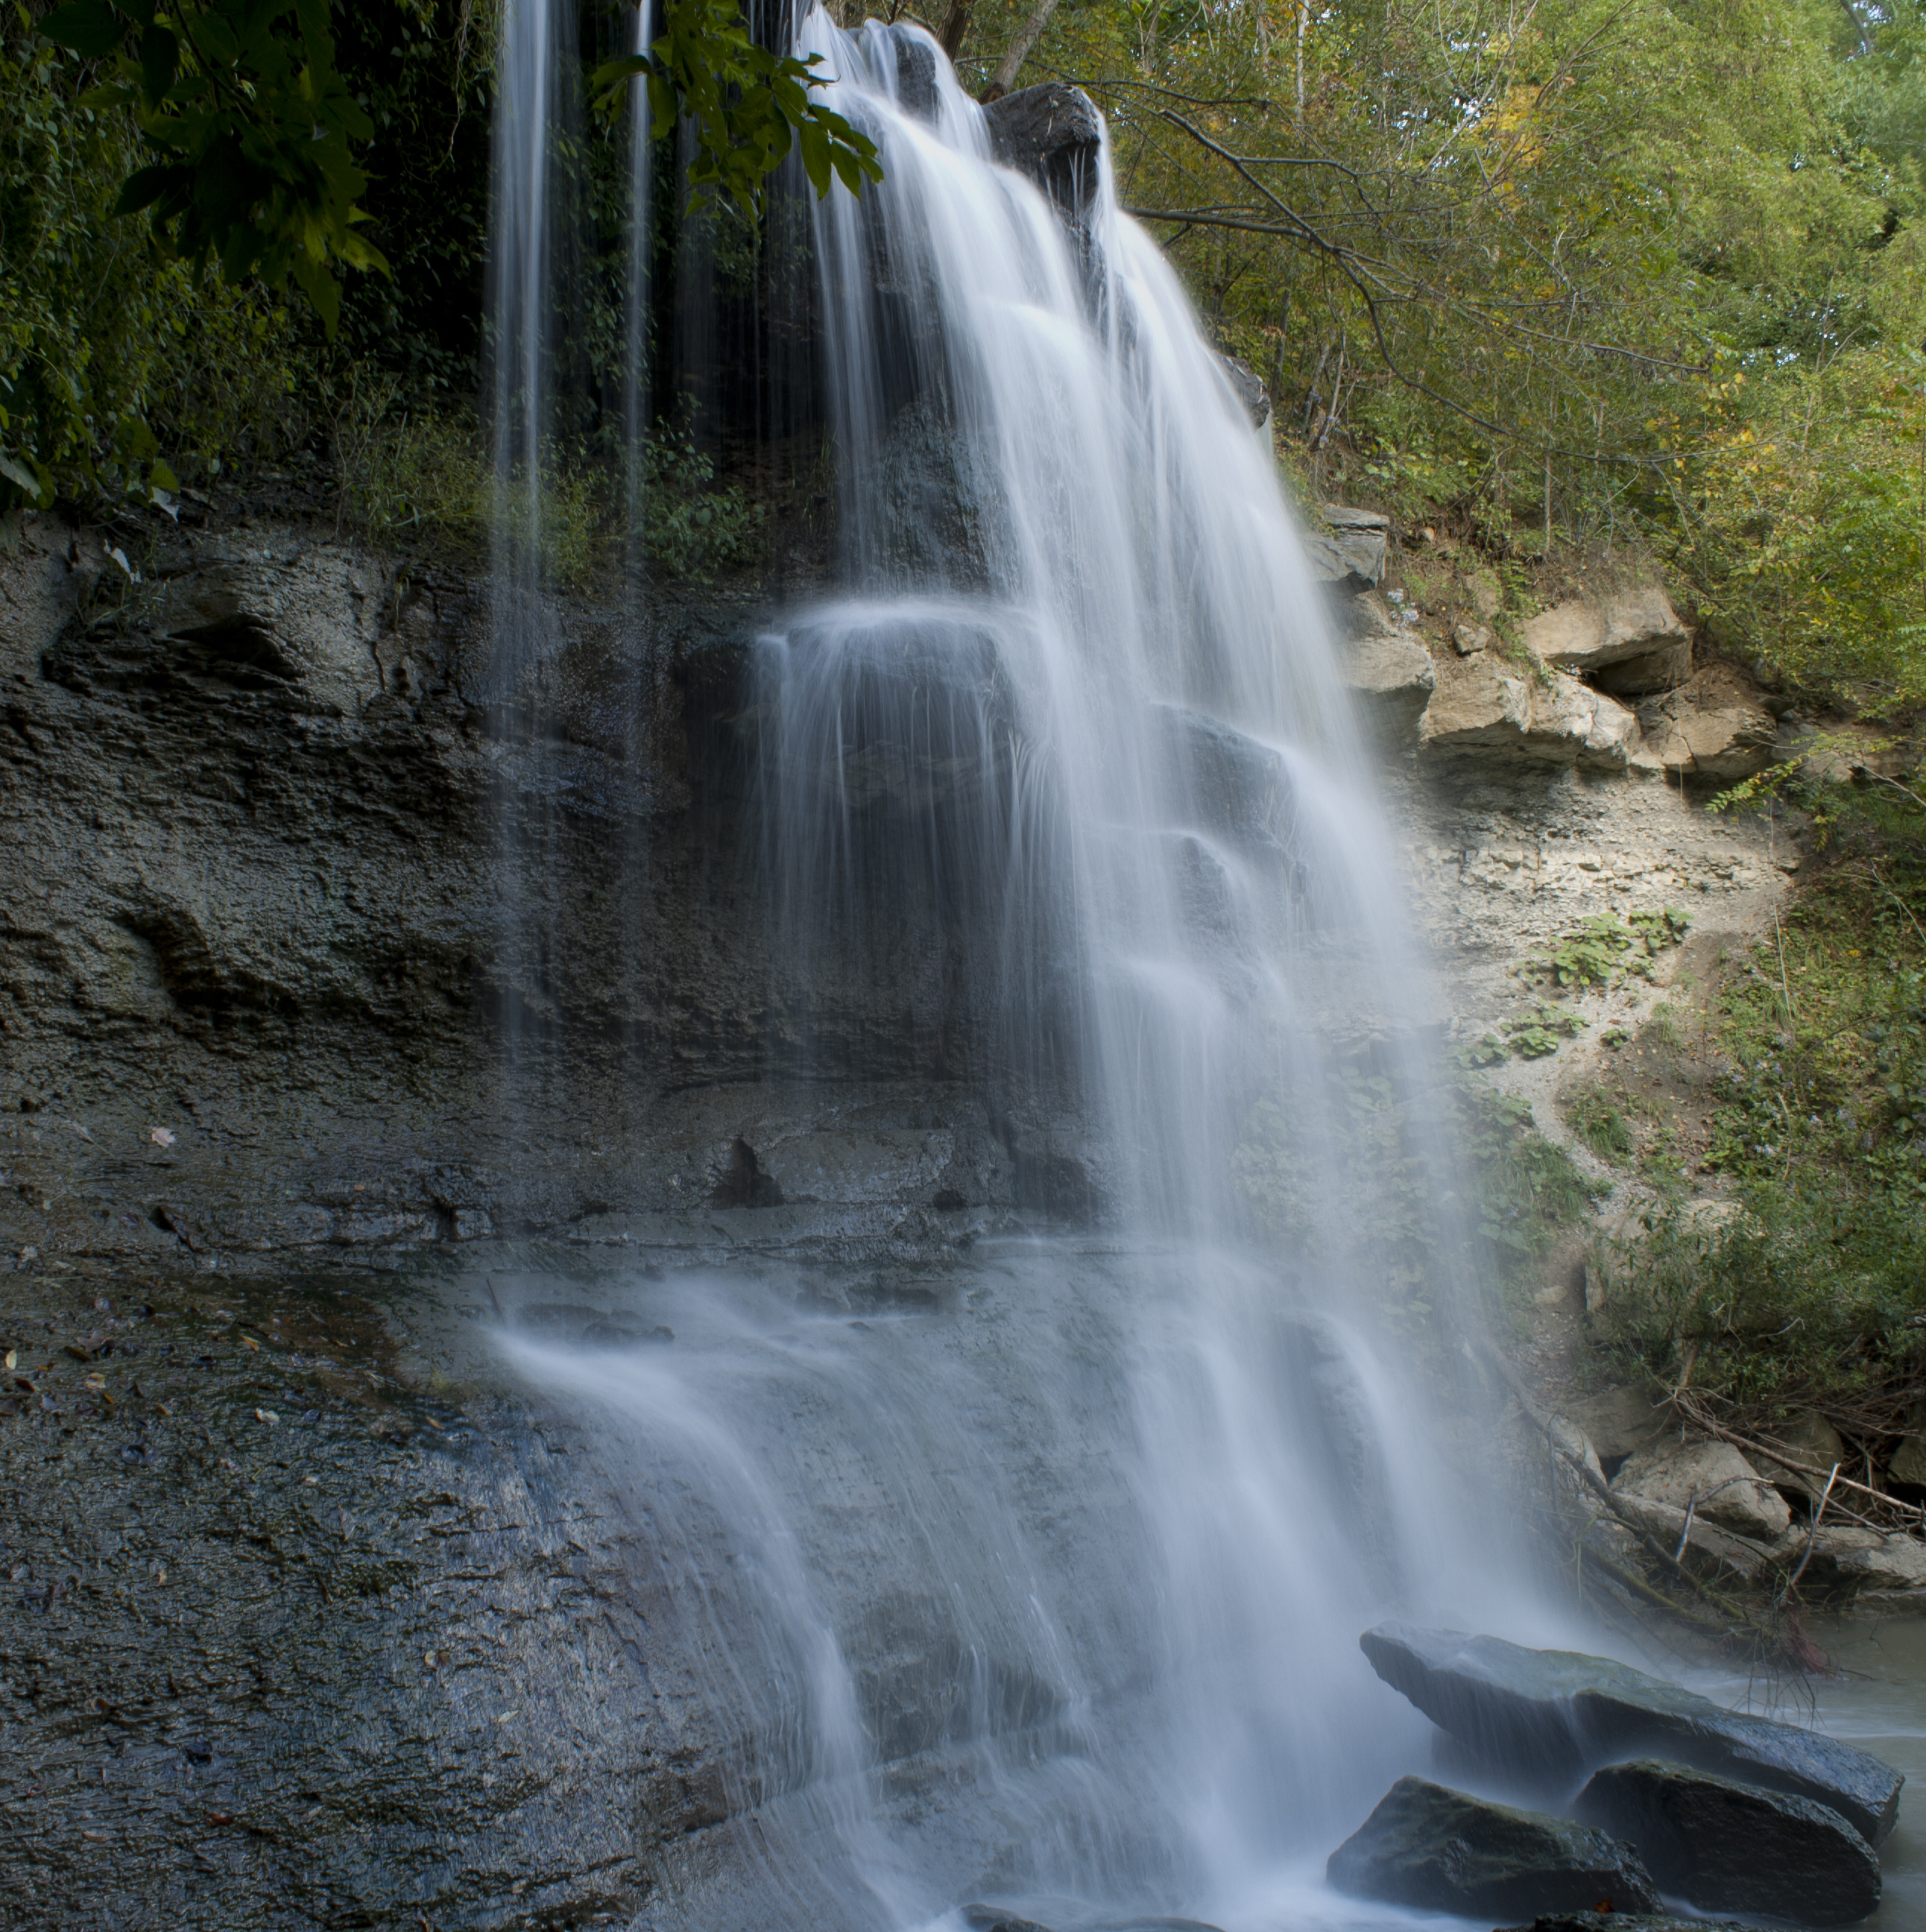 rock glen chatrooms Rock glen conservation area, arkona: see 51 reviews, articles, and 81 photos of rock glen conservation area, ranked no1 on tripadvisor among 5 attractions in arkona.